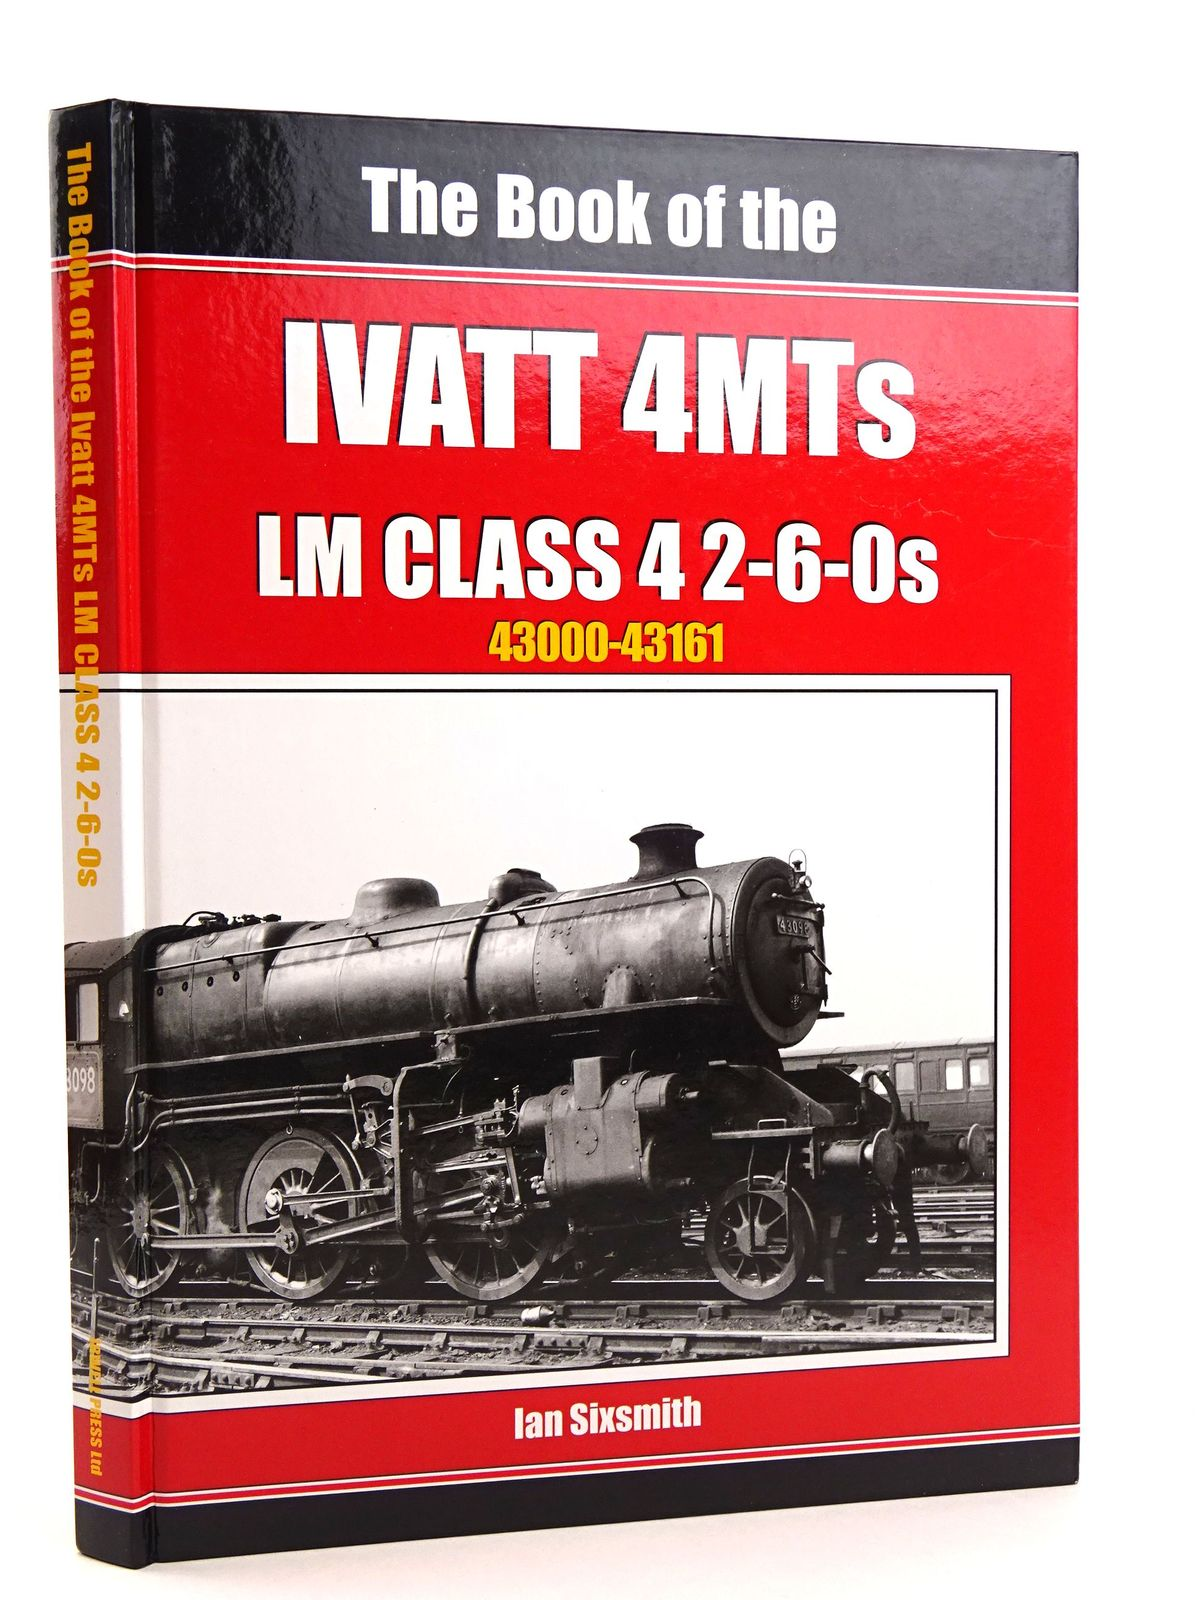 Photo of THE BOOK OF THE IVATT 4MTS: THE LMS CLASS 4 2-6-0S 43000-43161- Stock Number: 1818107